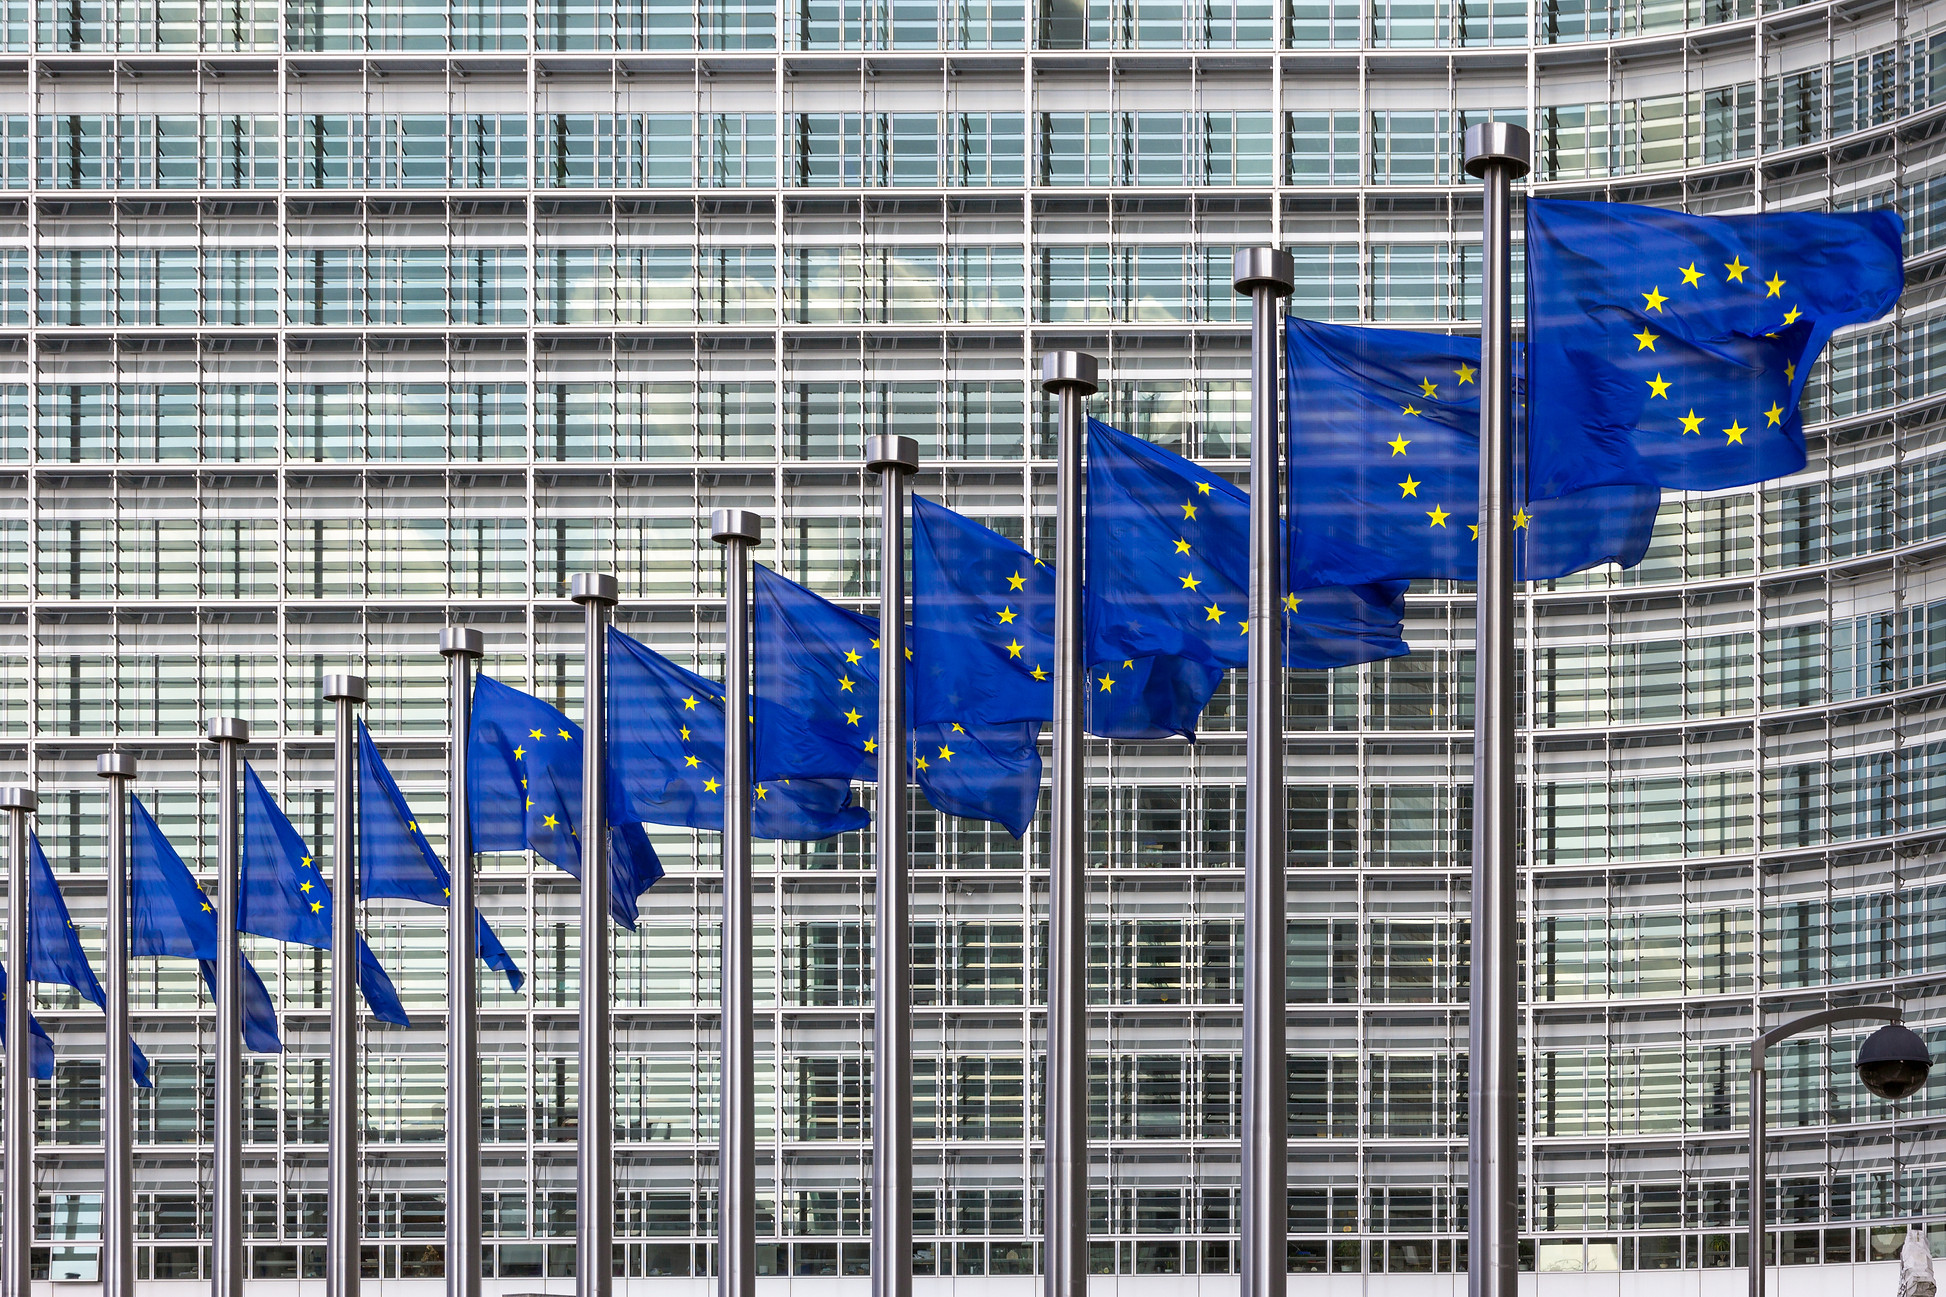 Row of EU Flags in front of the European